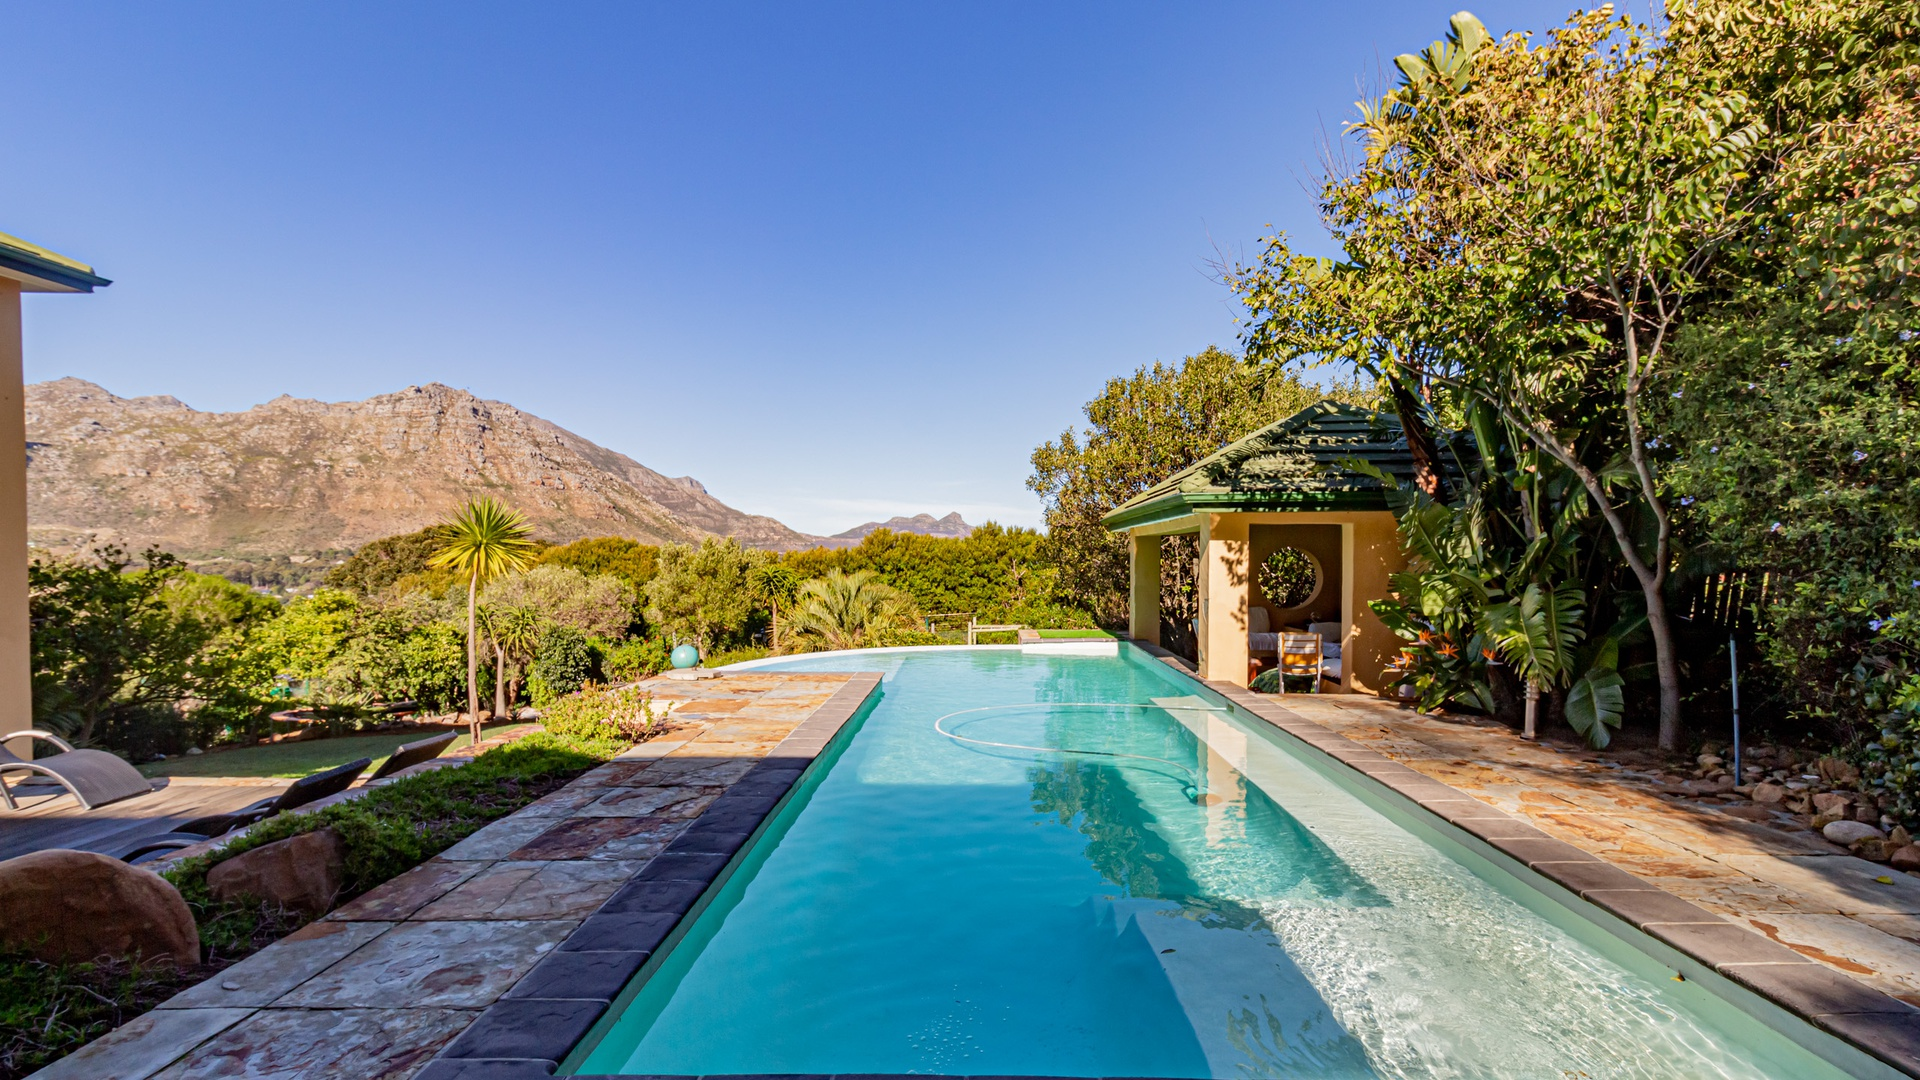 House in Hout Bay - Image-043.jpg